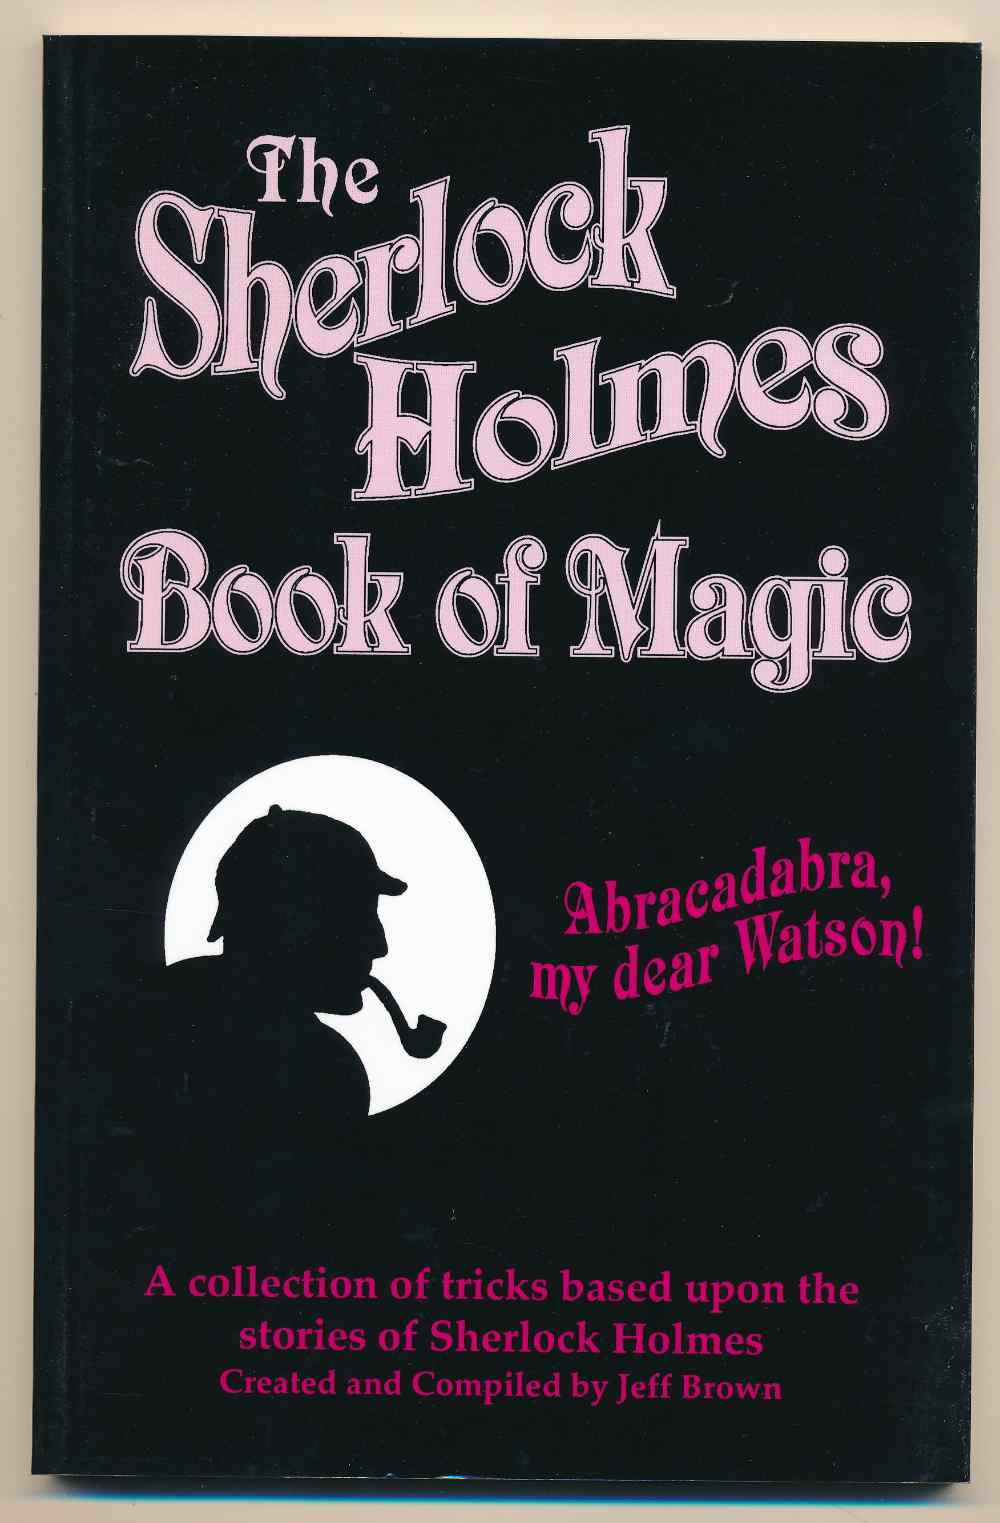 The Sherlock Holmes book of magic